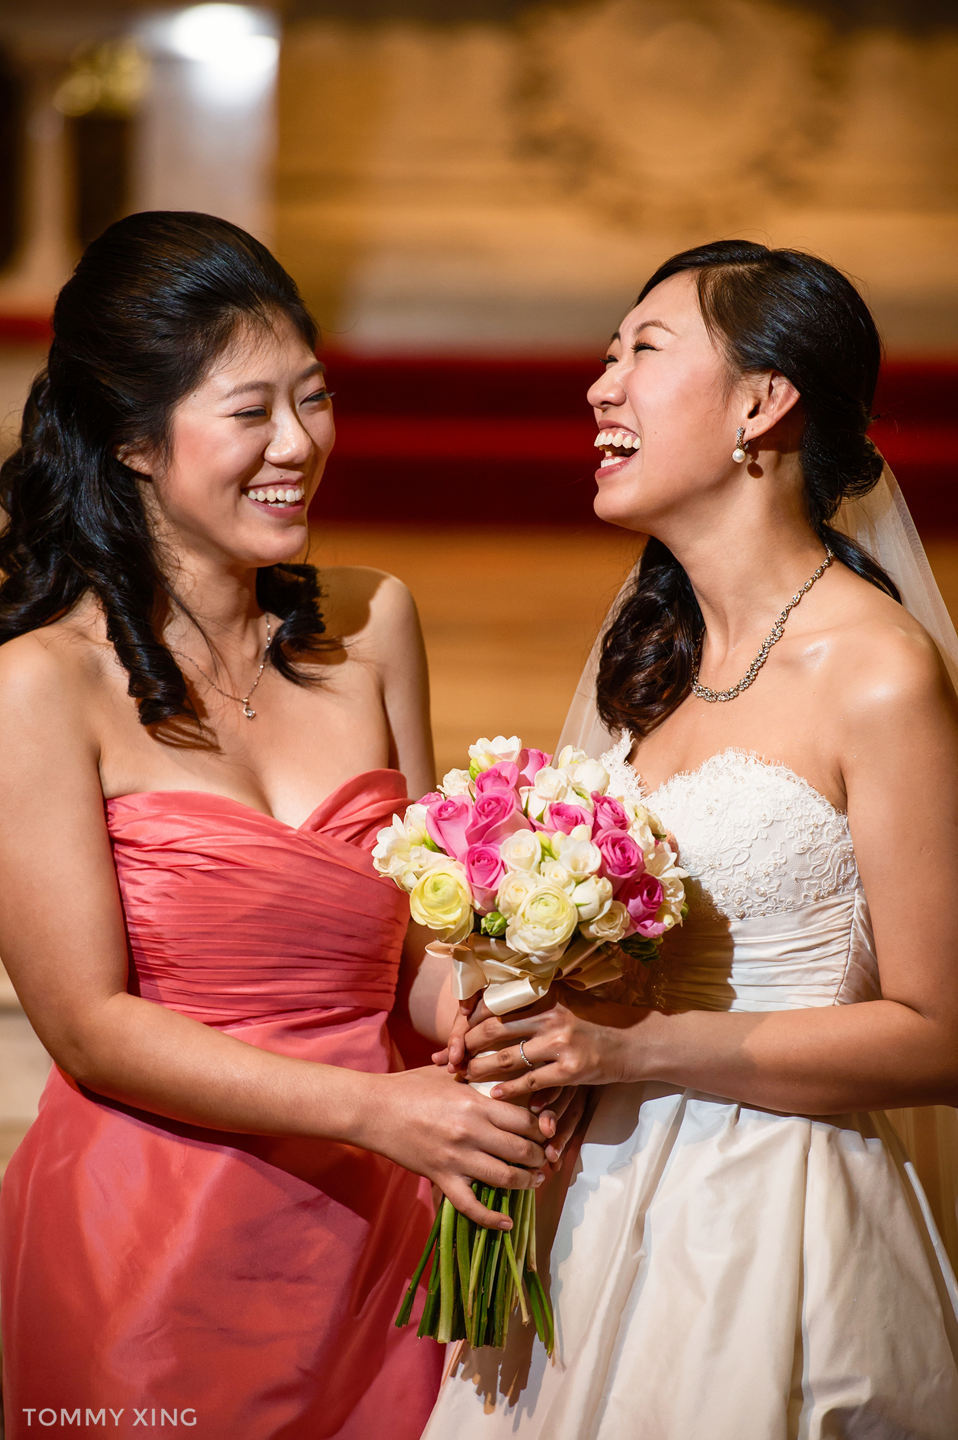 STANFORD MEMORIAL CHURCH WEDDING SAN FRANCISCO BAY AREA 斯坦福教堂婚礼 洛杉矶婚礼婚纱摄影师  Tommy Xing 62.jpg